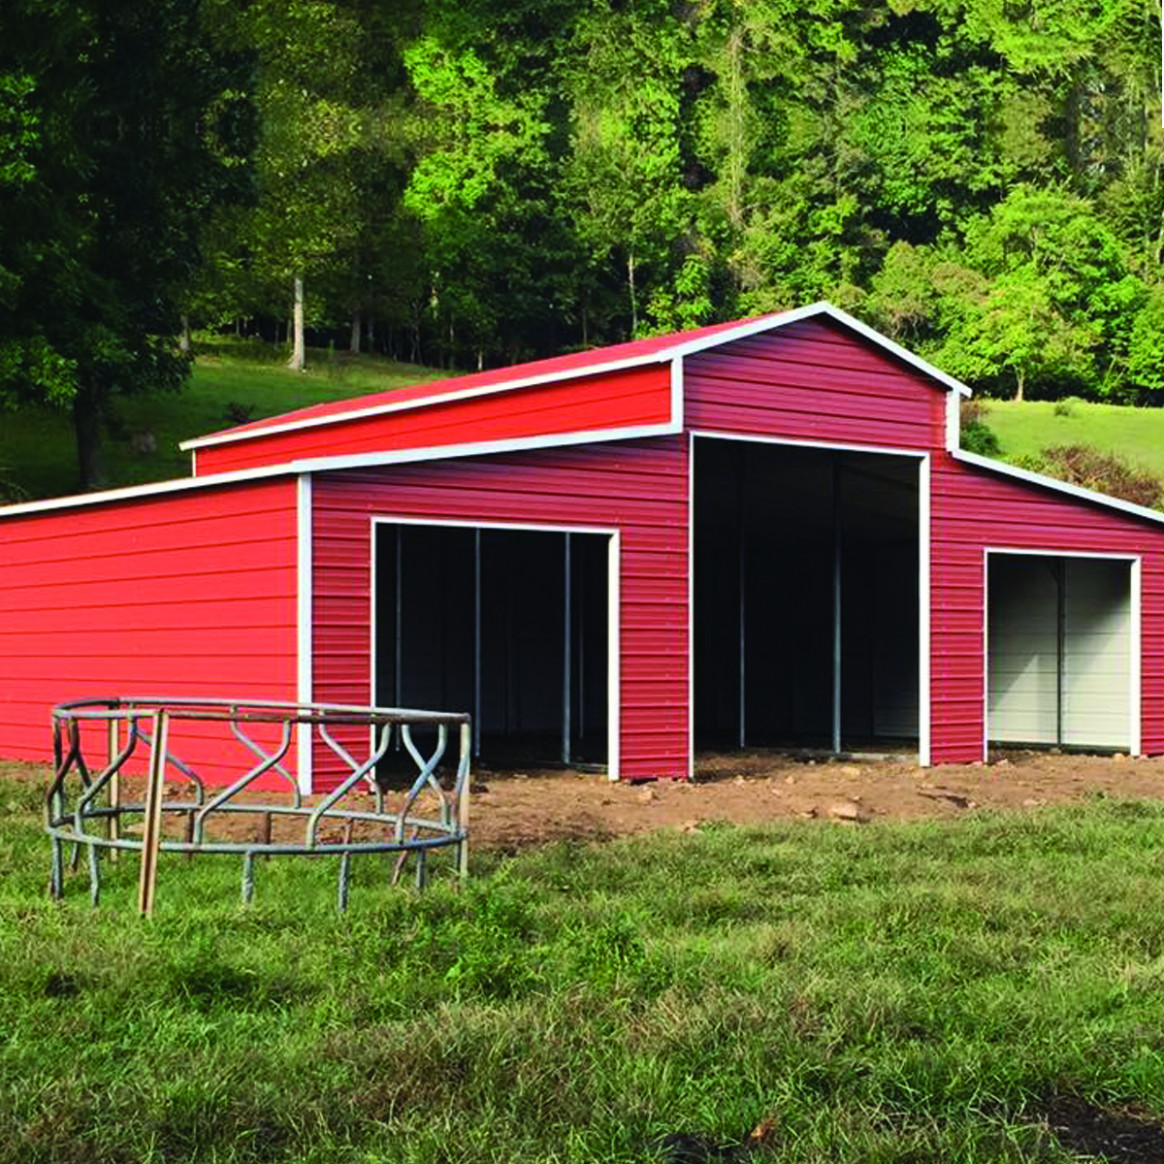 Products - Metal Carports, Garages, Barns, Workshops for Sale ...